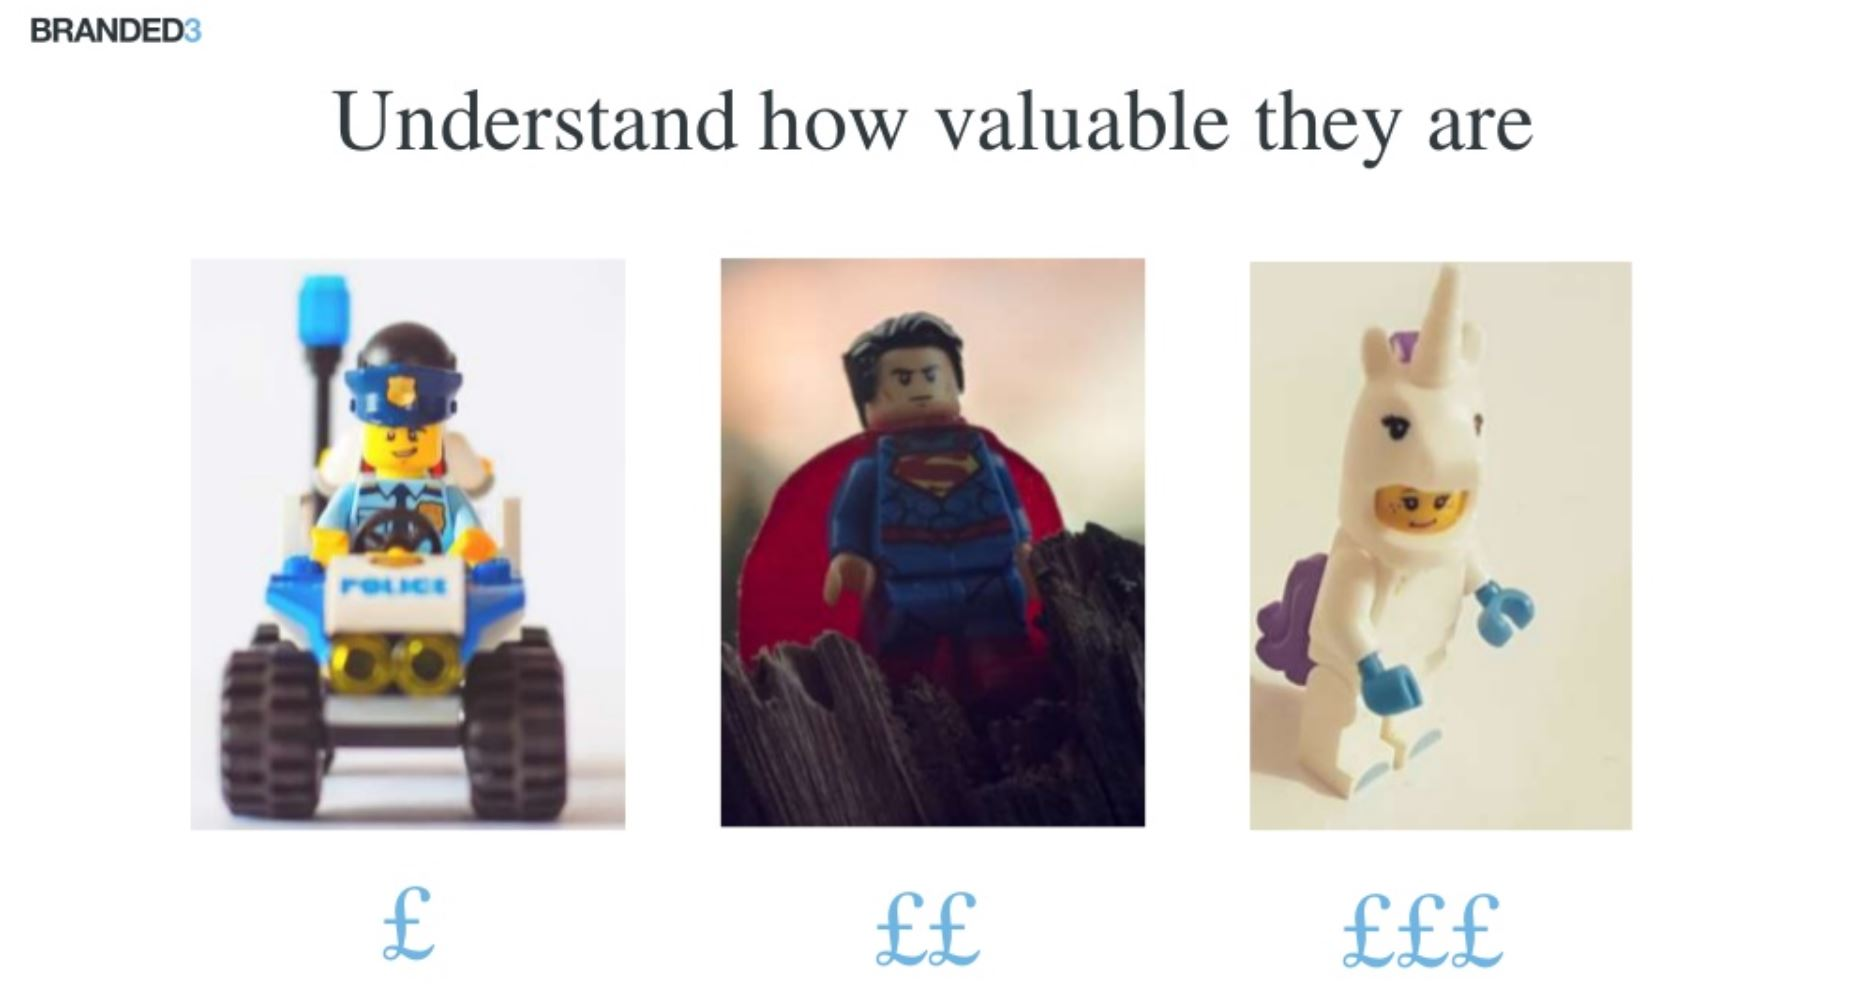 Image of lego figures with dollar signs underneath indicating their value as a customer